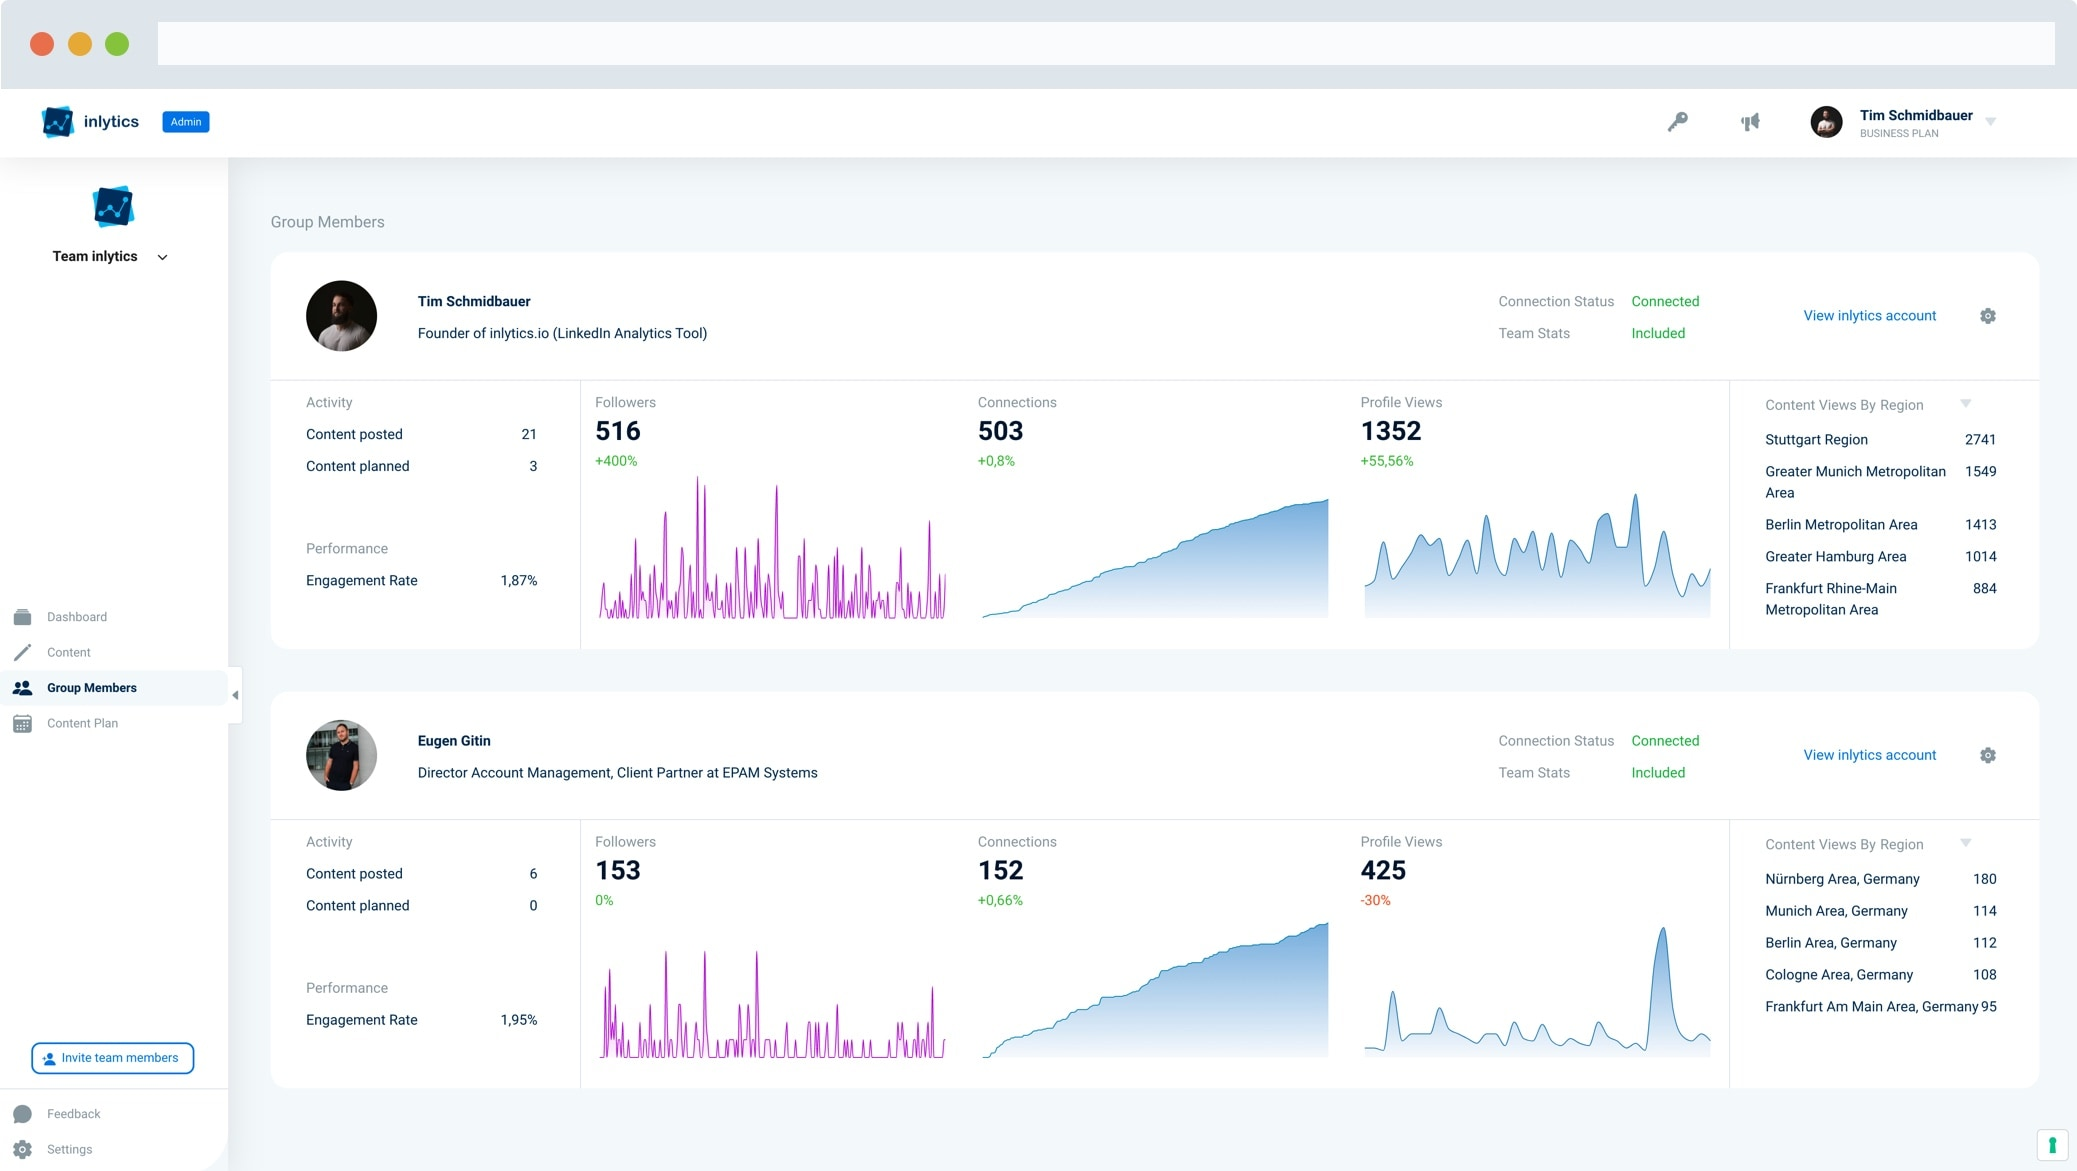 Corporate influencer tool for LinkedIn by inlytics, dashboard view.